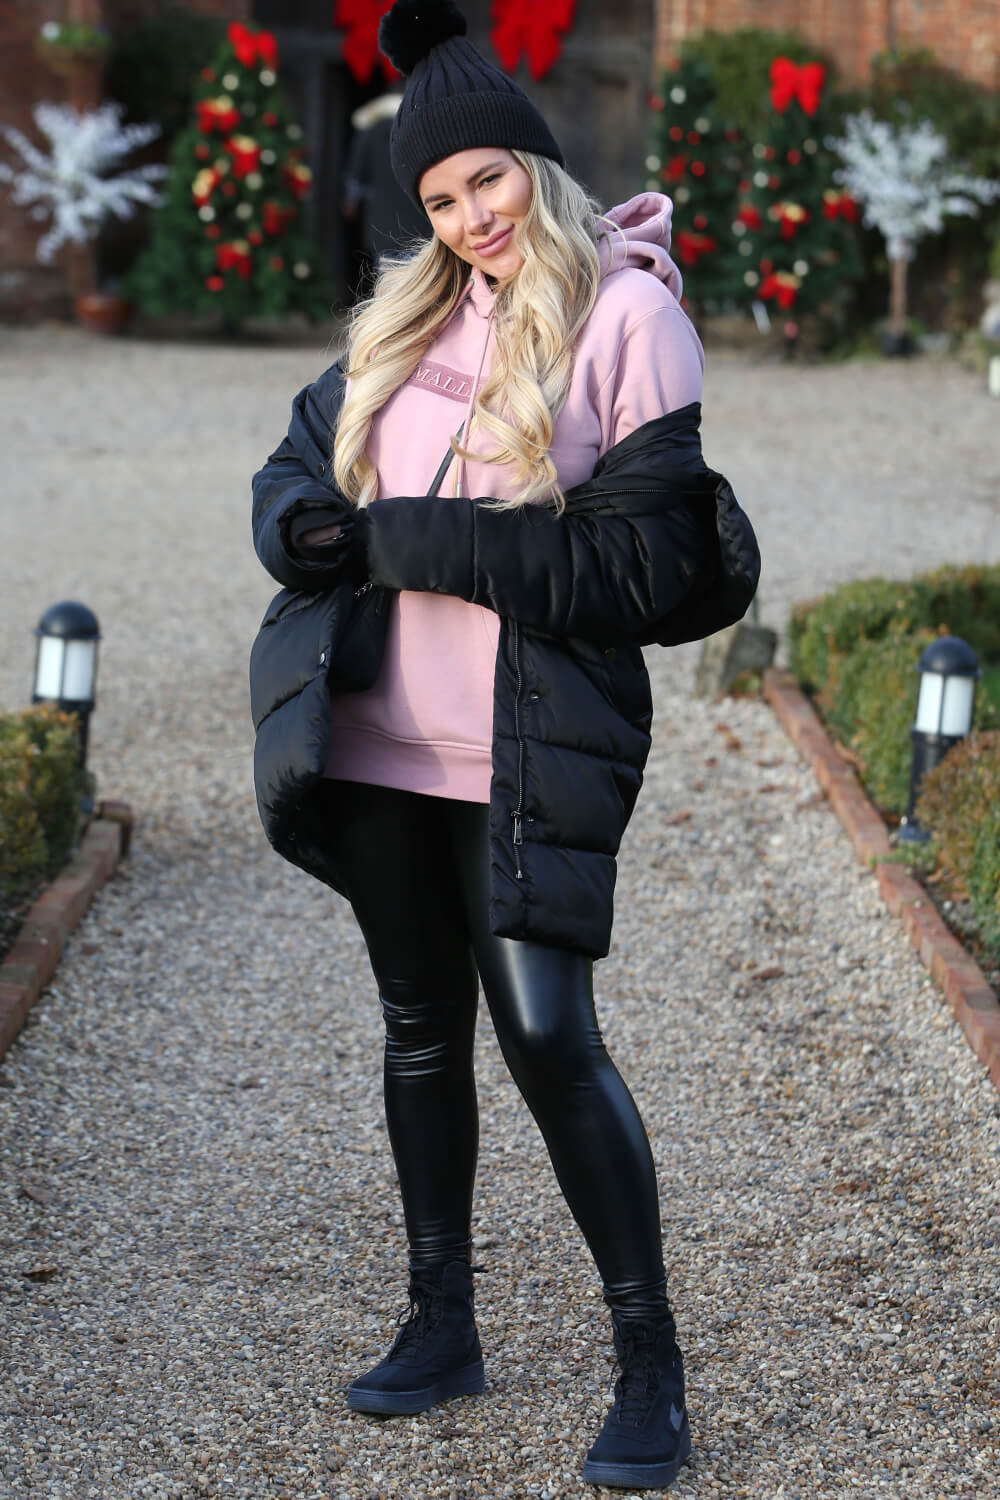 Georgia Kousoulou at The Only Way is Essex Christmas Special filming